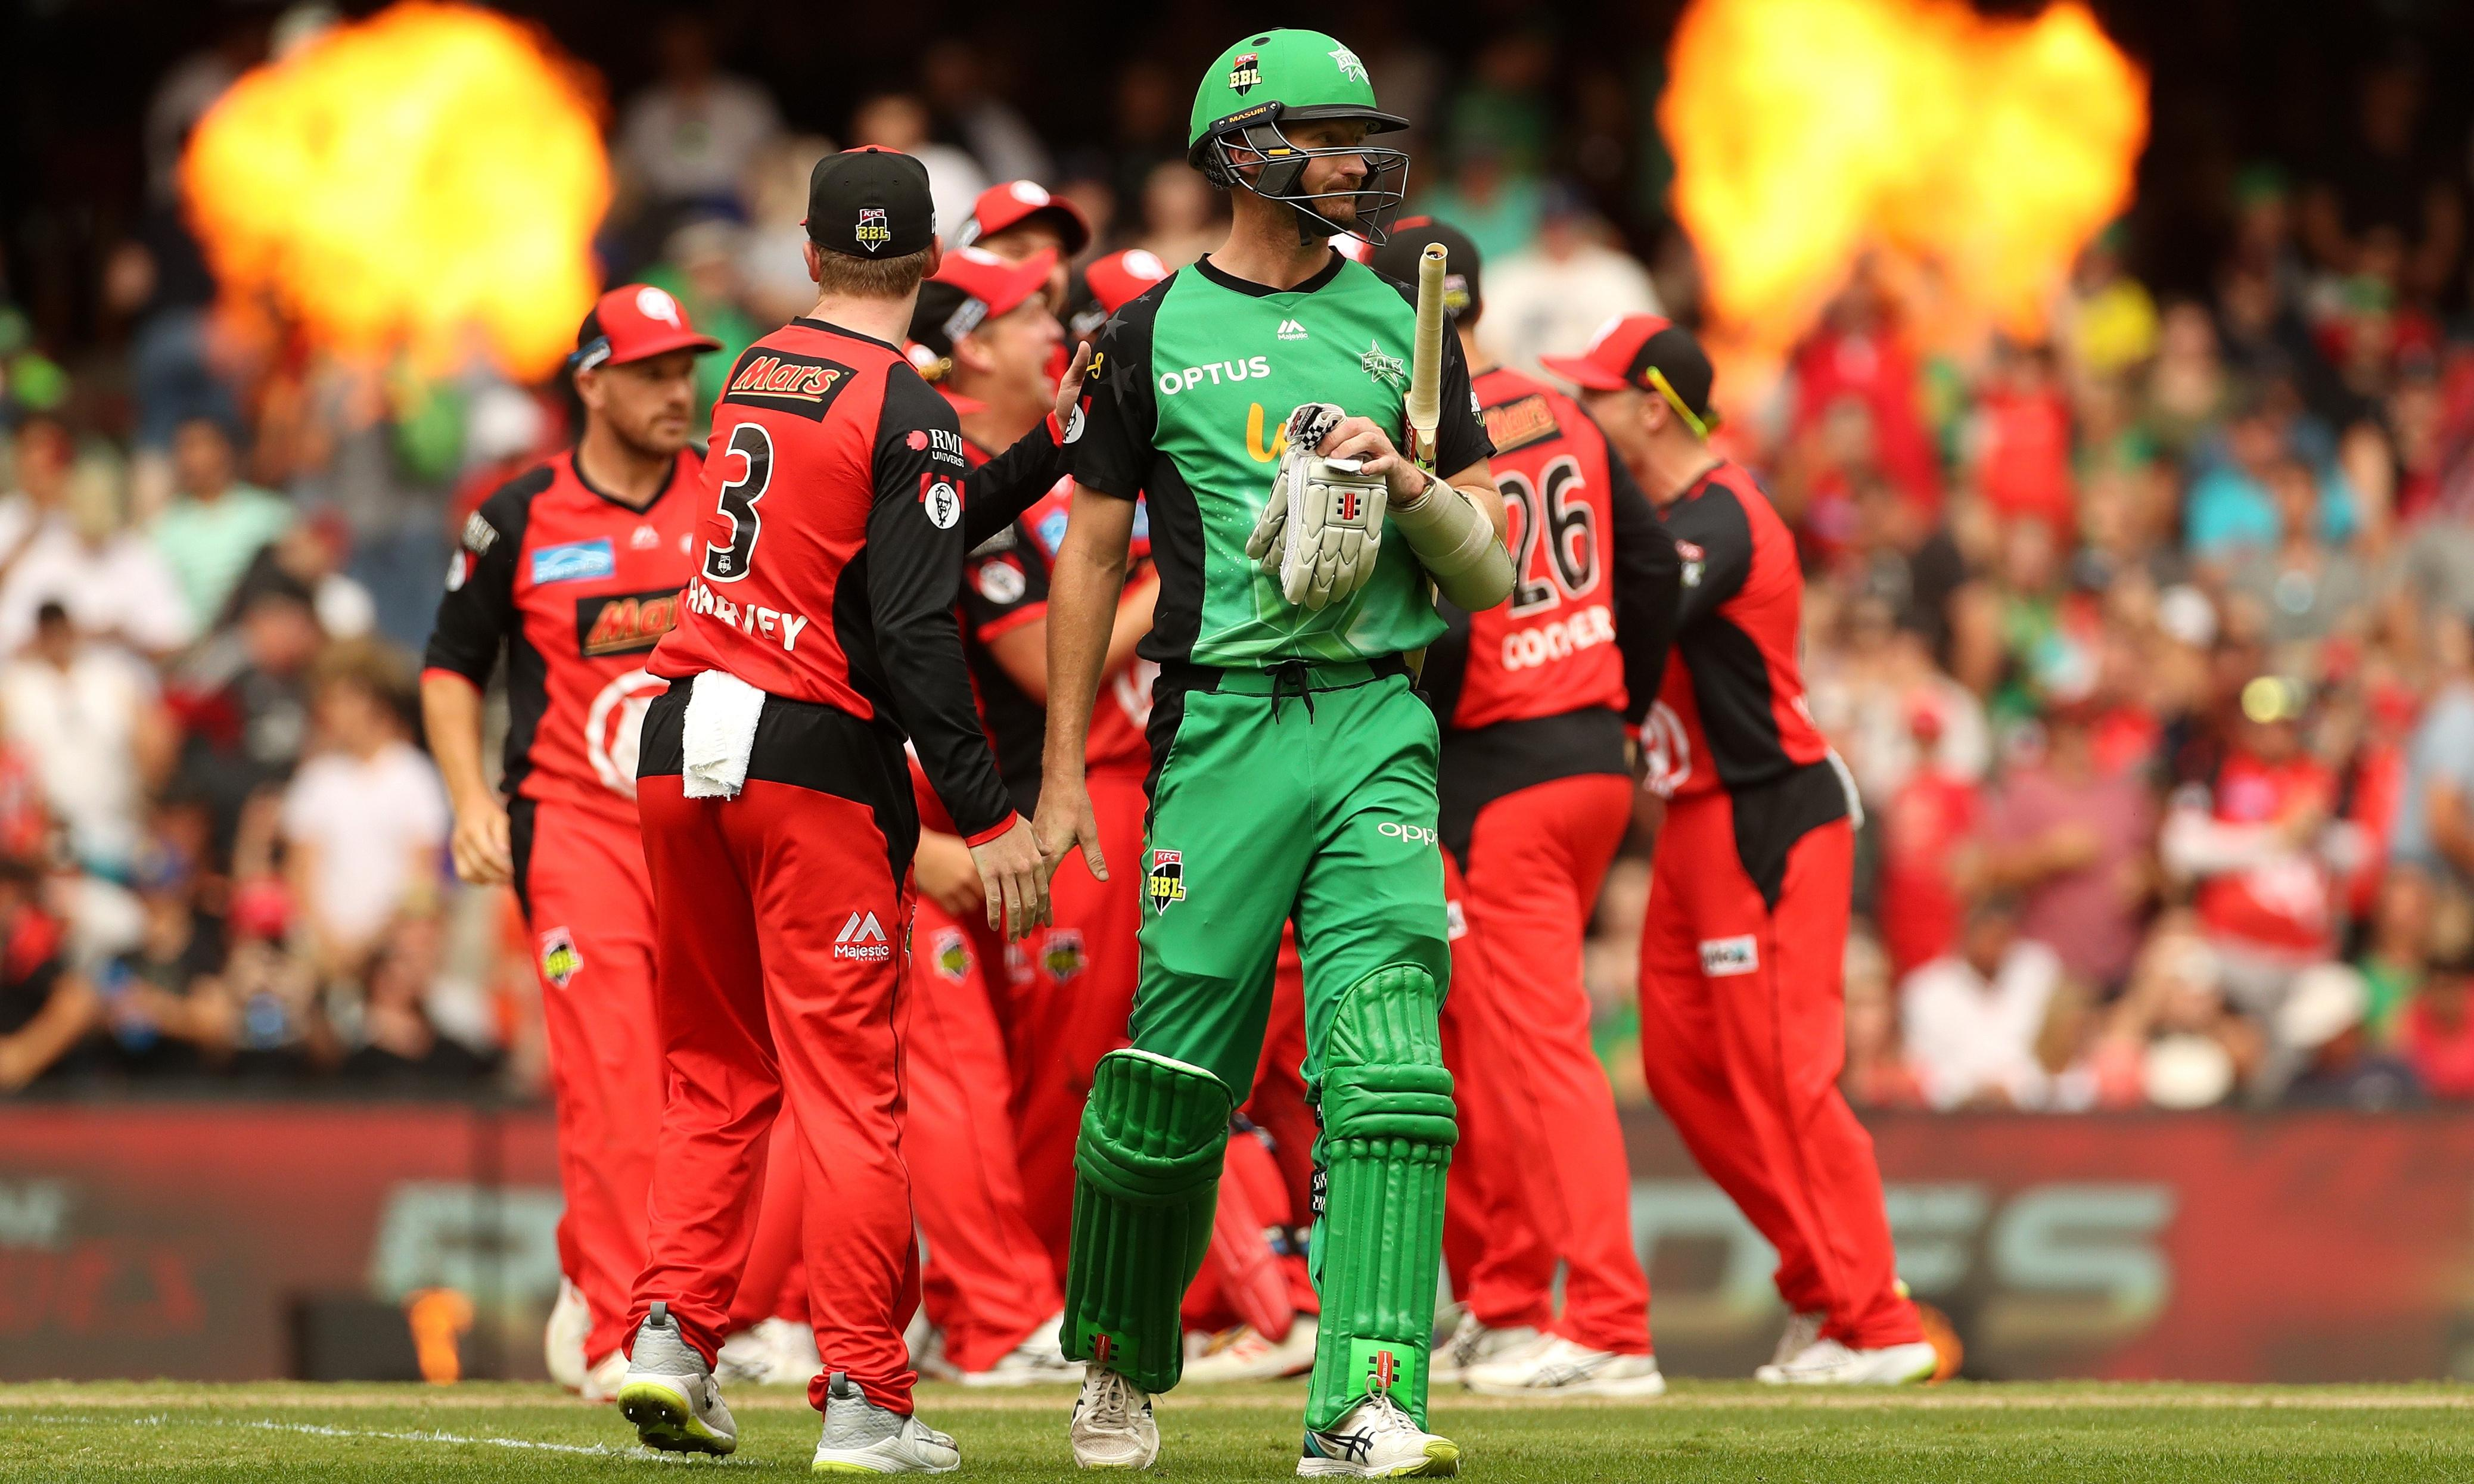 Bloated, jumbled and too long: where now for the Big Bash?